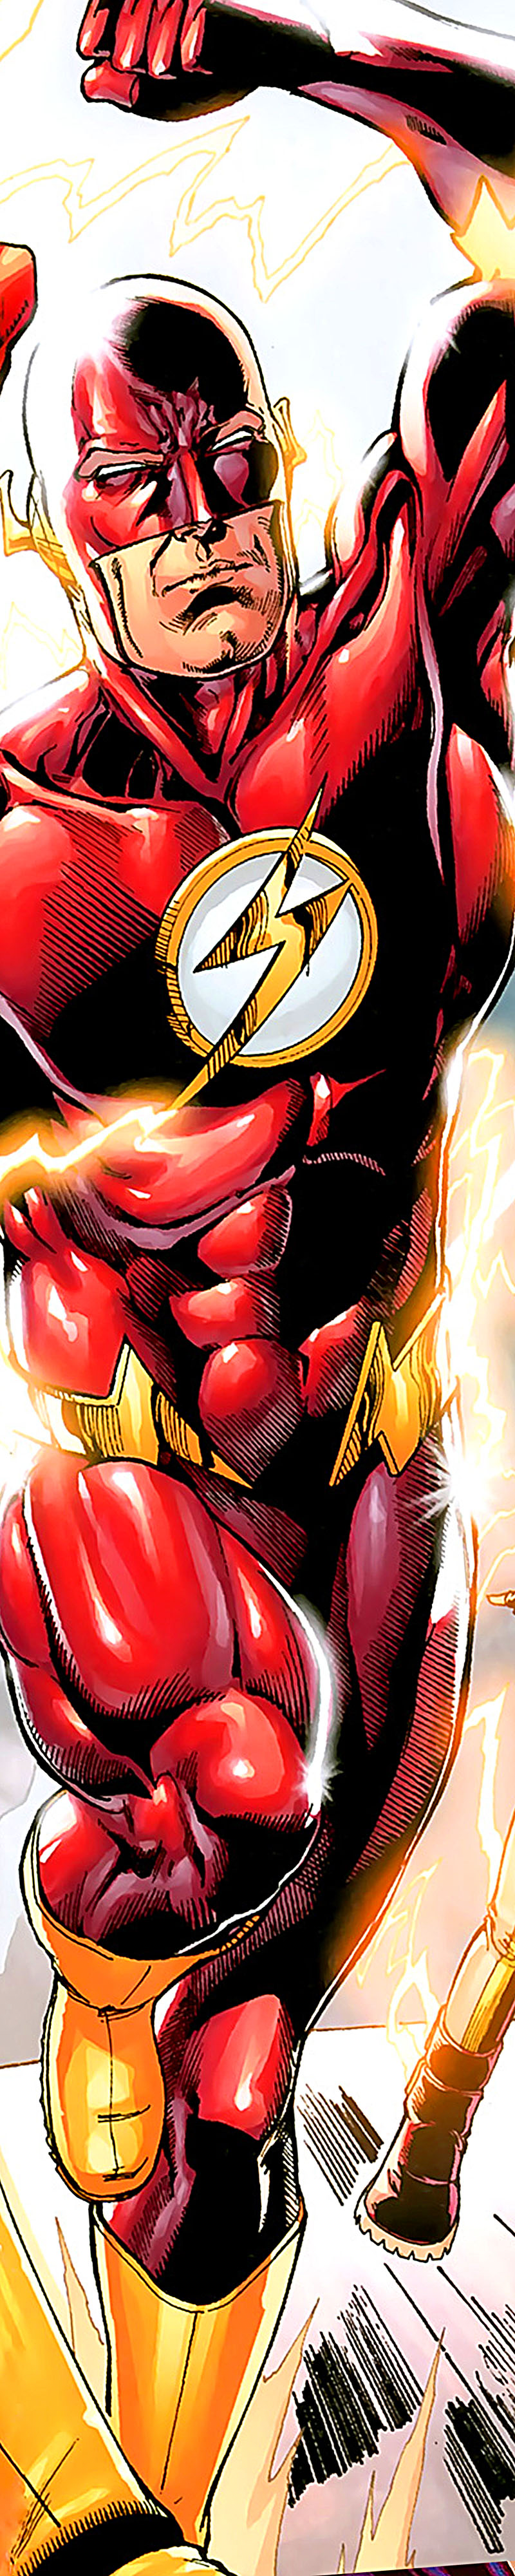 In my opinion the best flash crimson suit single rippled lightning superhero buycottarizona Image collections